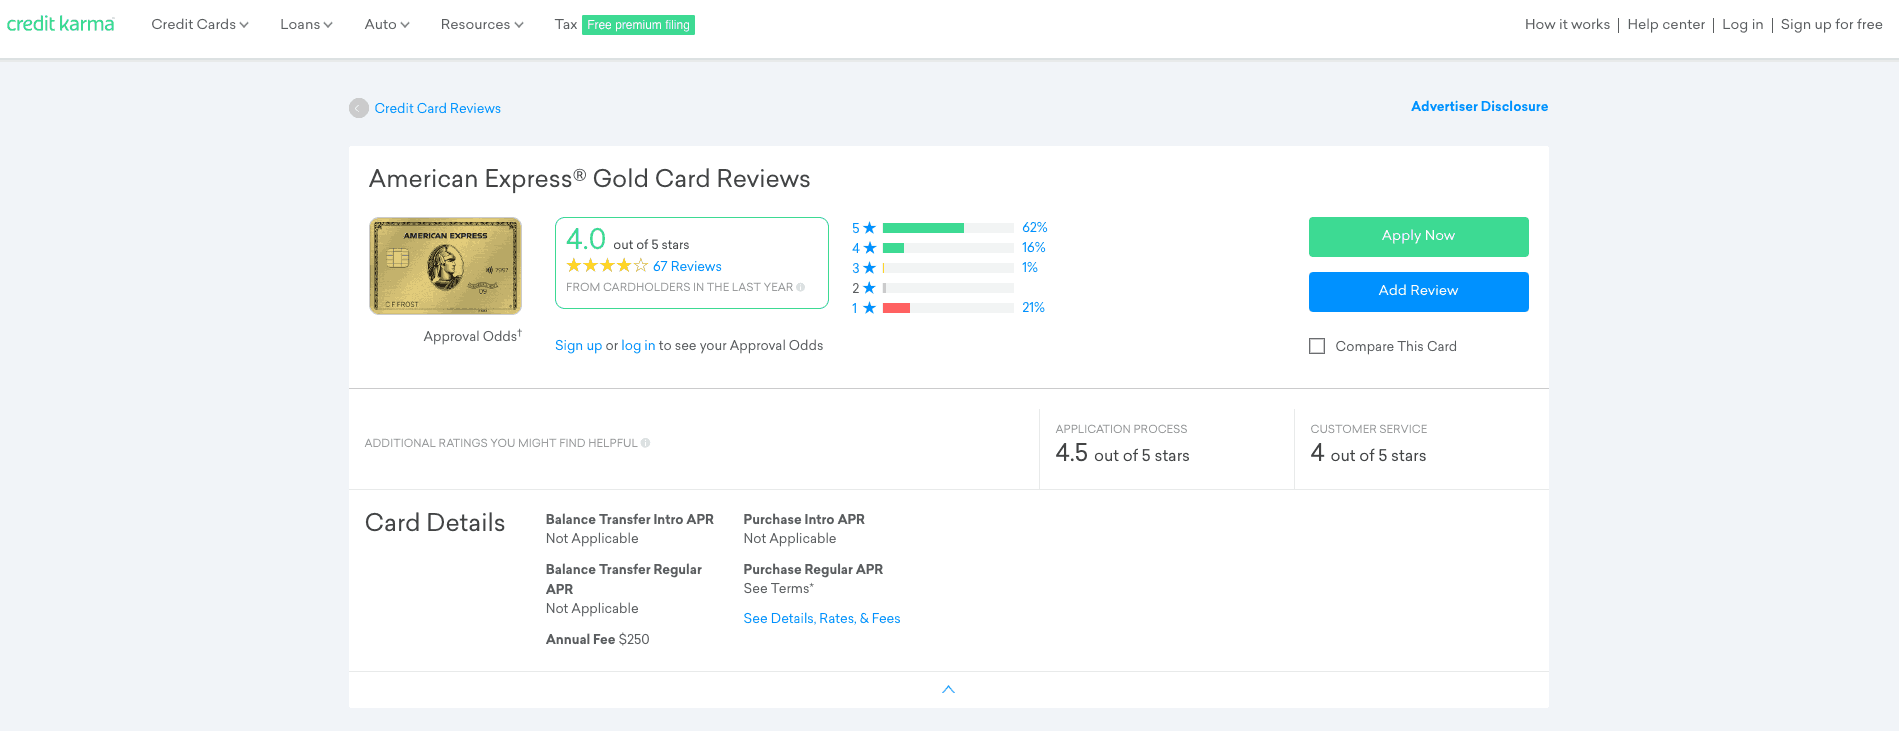 The Financial Service Organization's Guide to Credit Karma Reviews